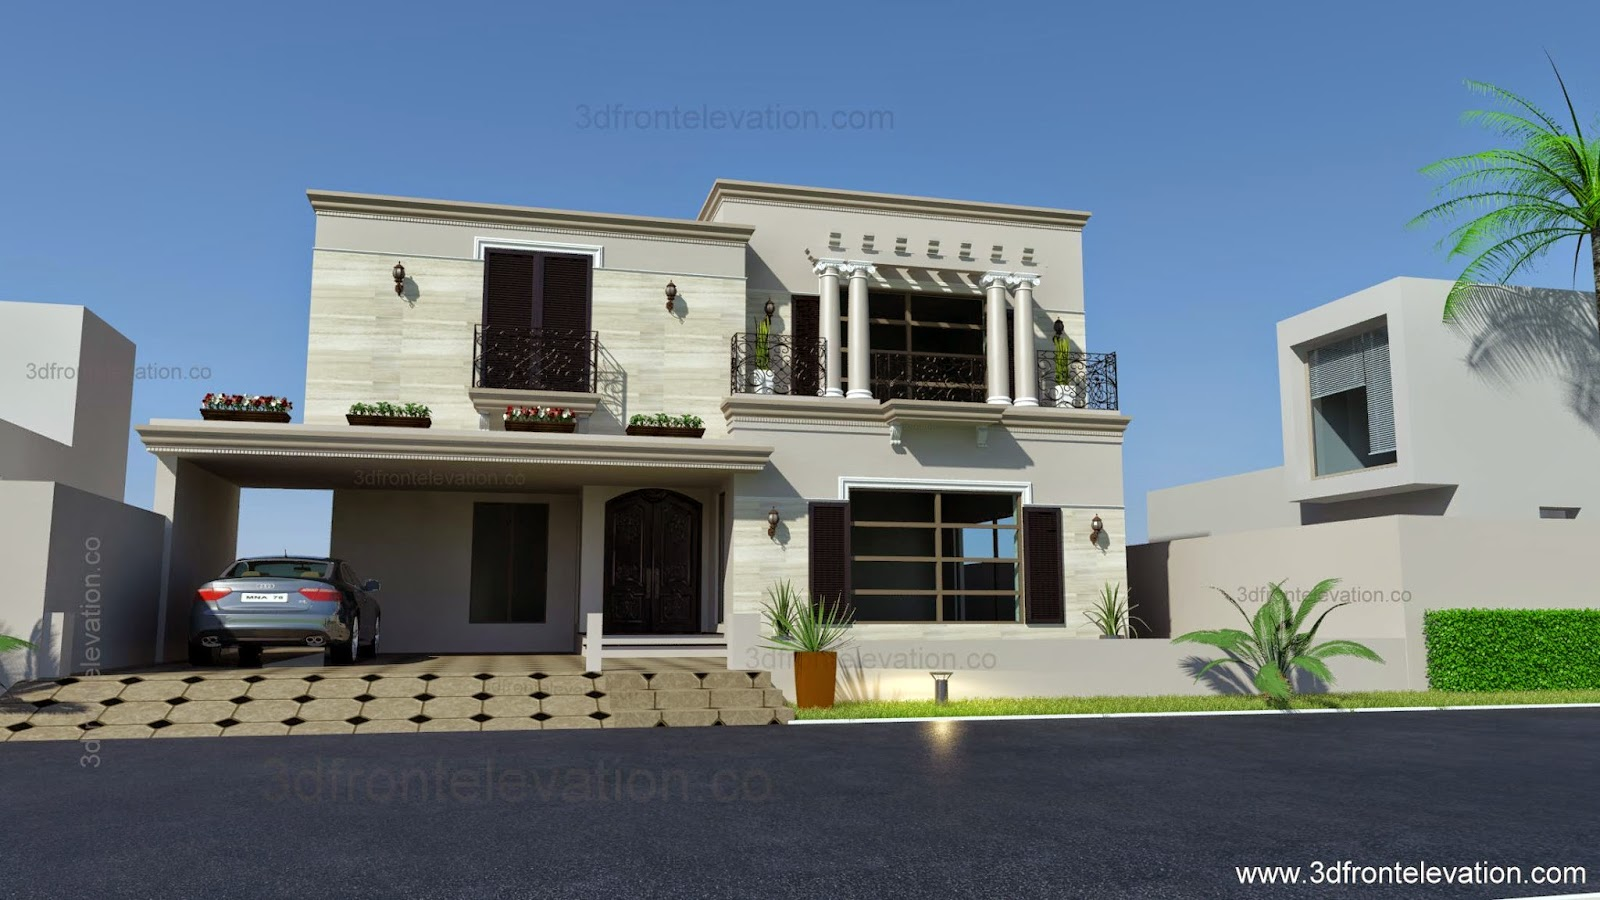 3d Front Elevation Com 1 Kspanish House Design Plan